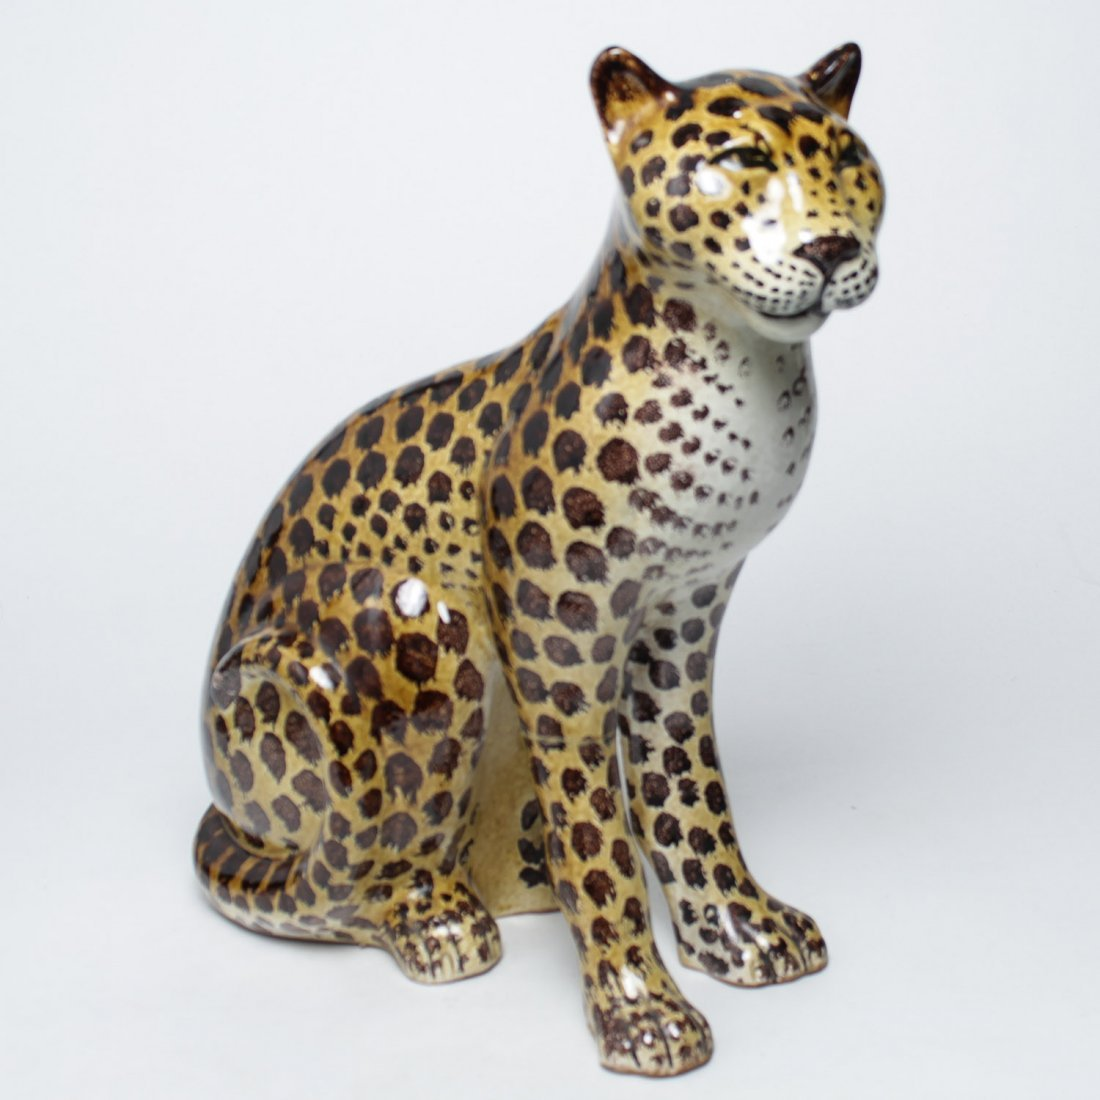 Italian Ceramic Leopard Sculpture